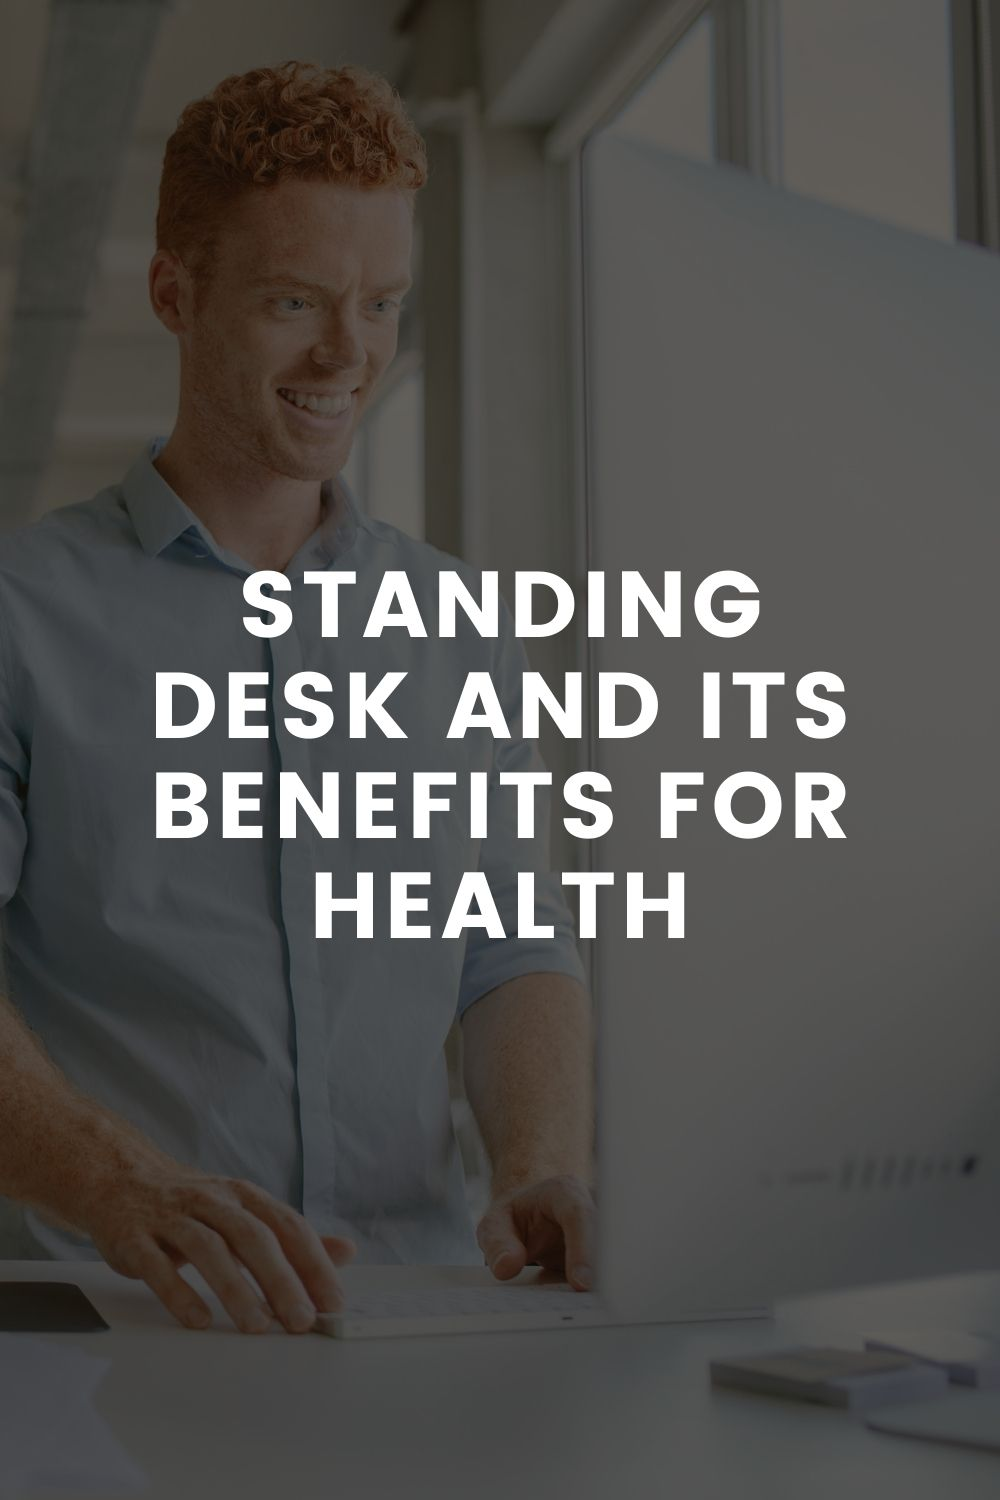 Standing Desk and Its Benefits for Health